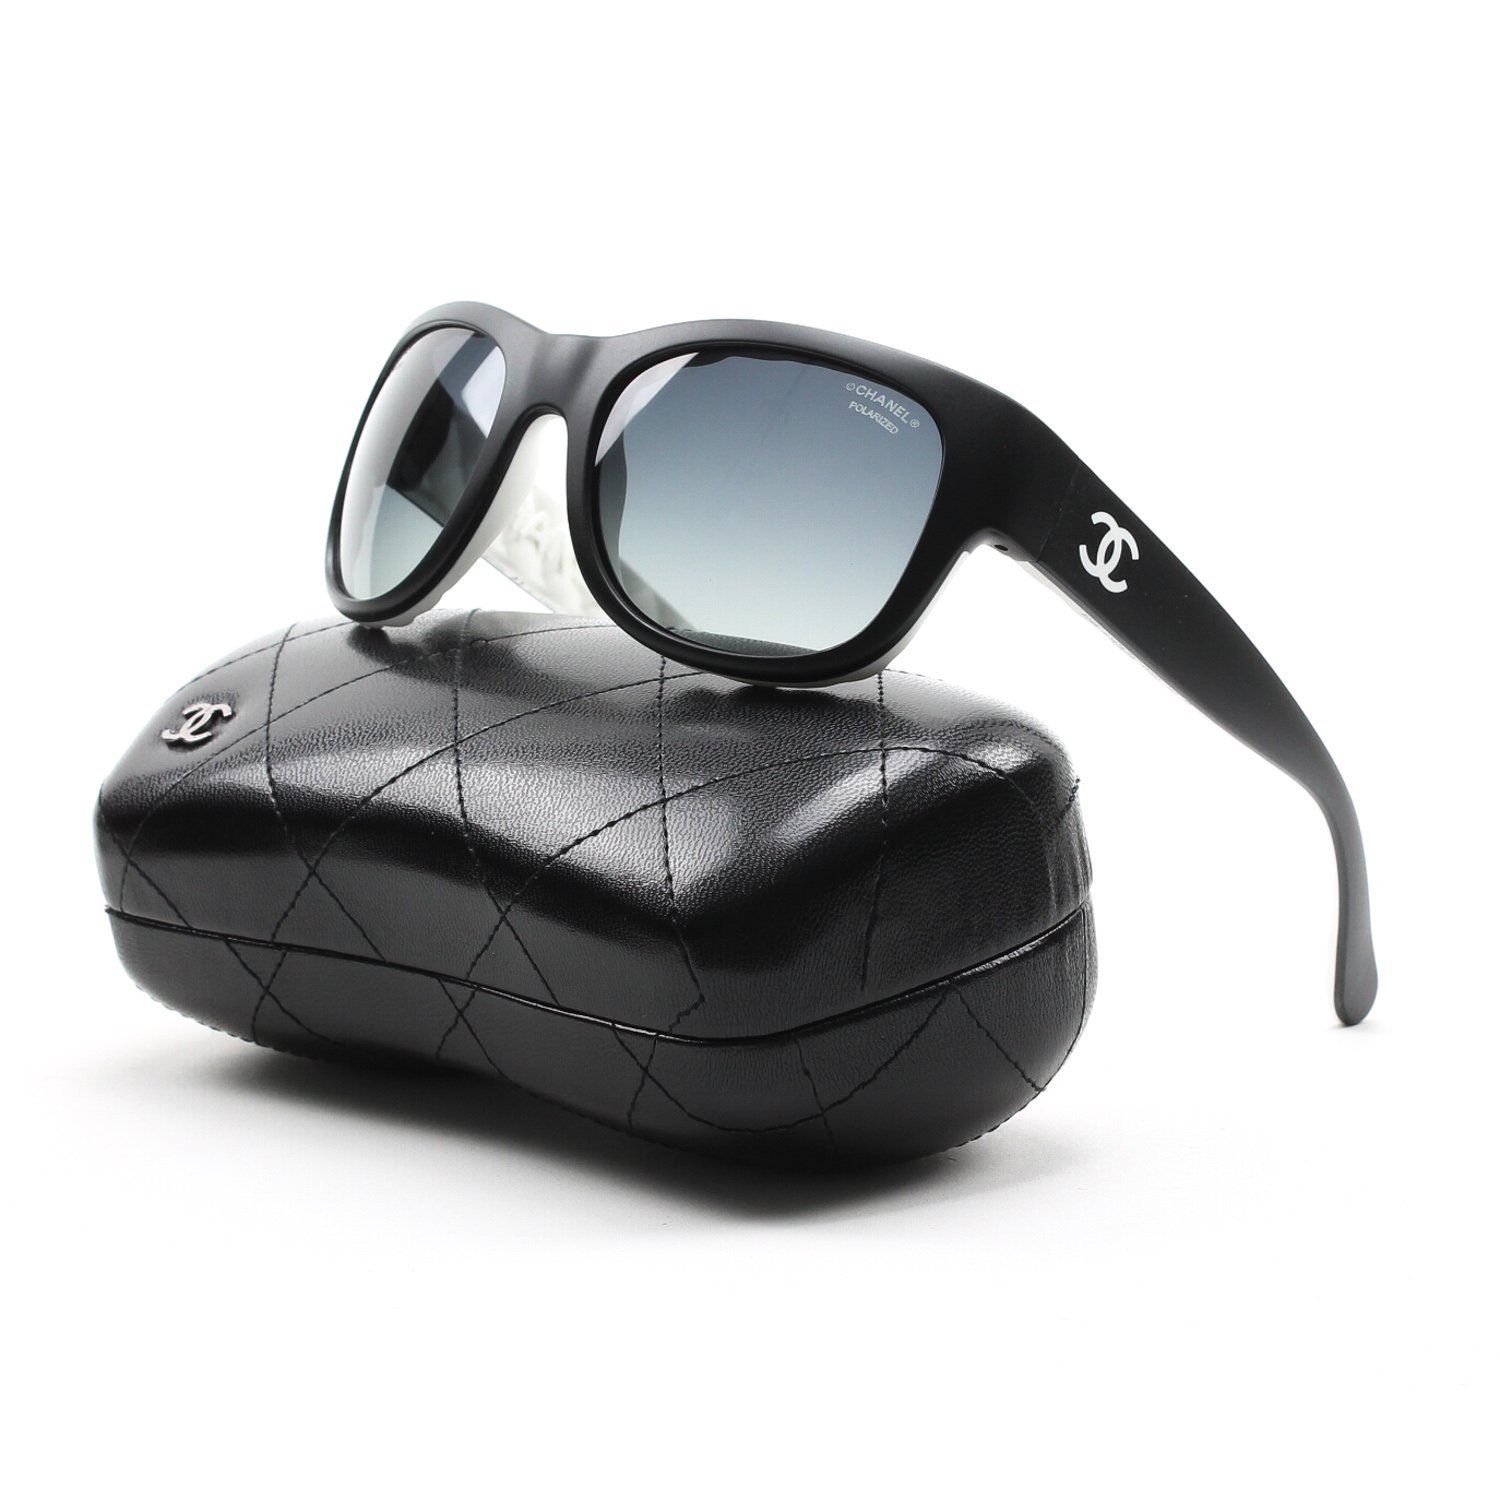 Chanel Womens 6049 Black Sunglasses